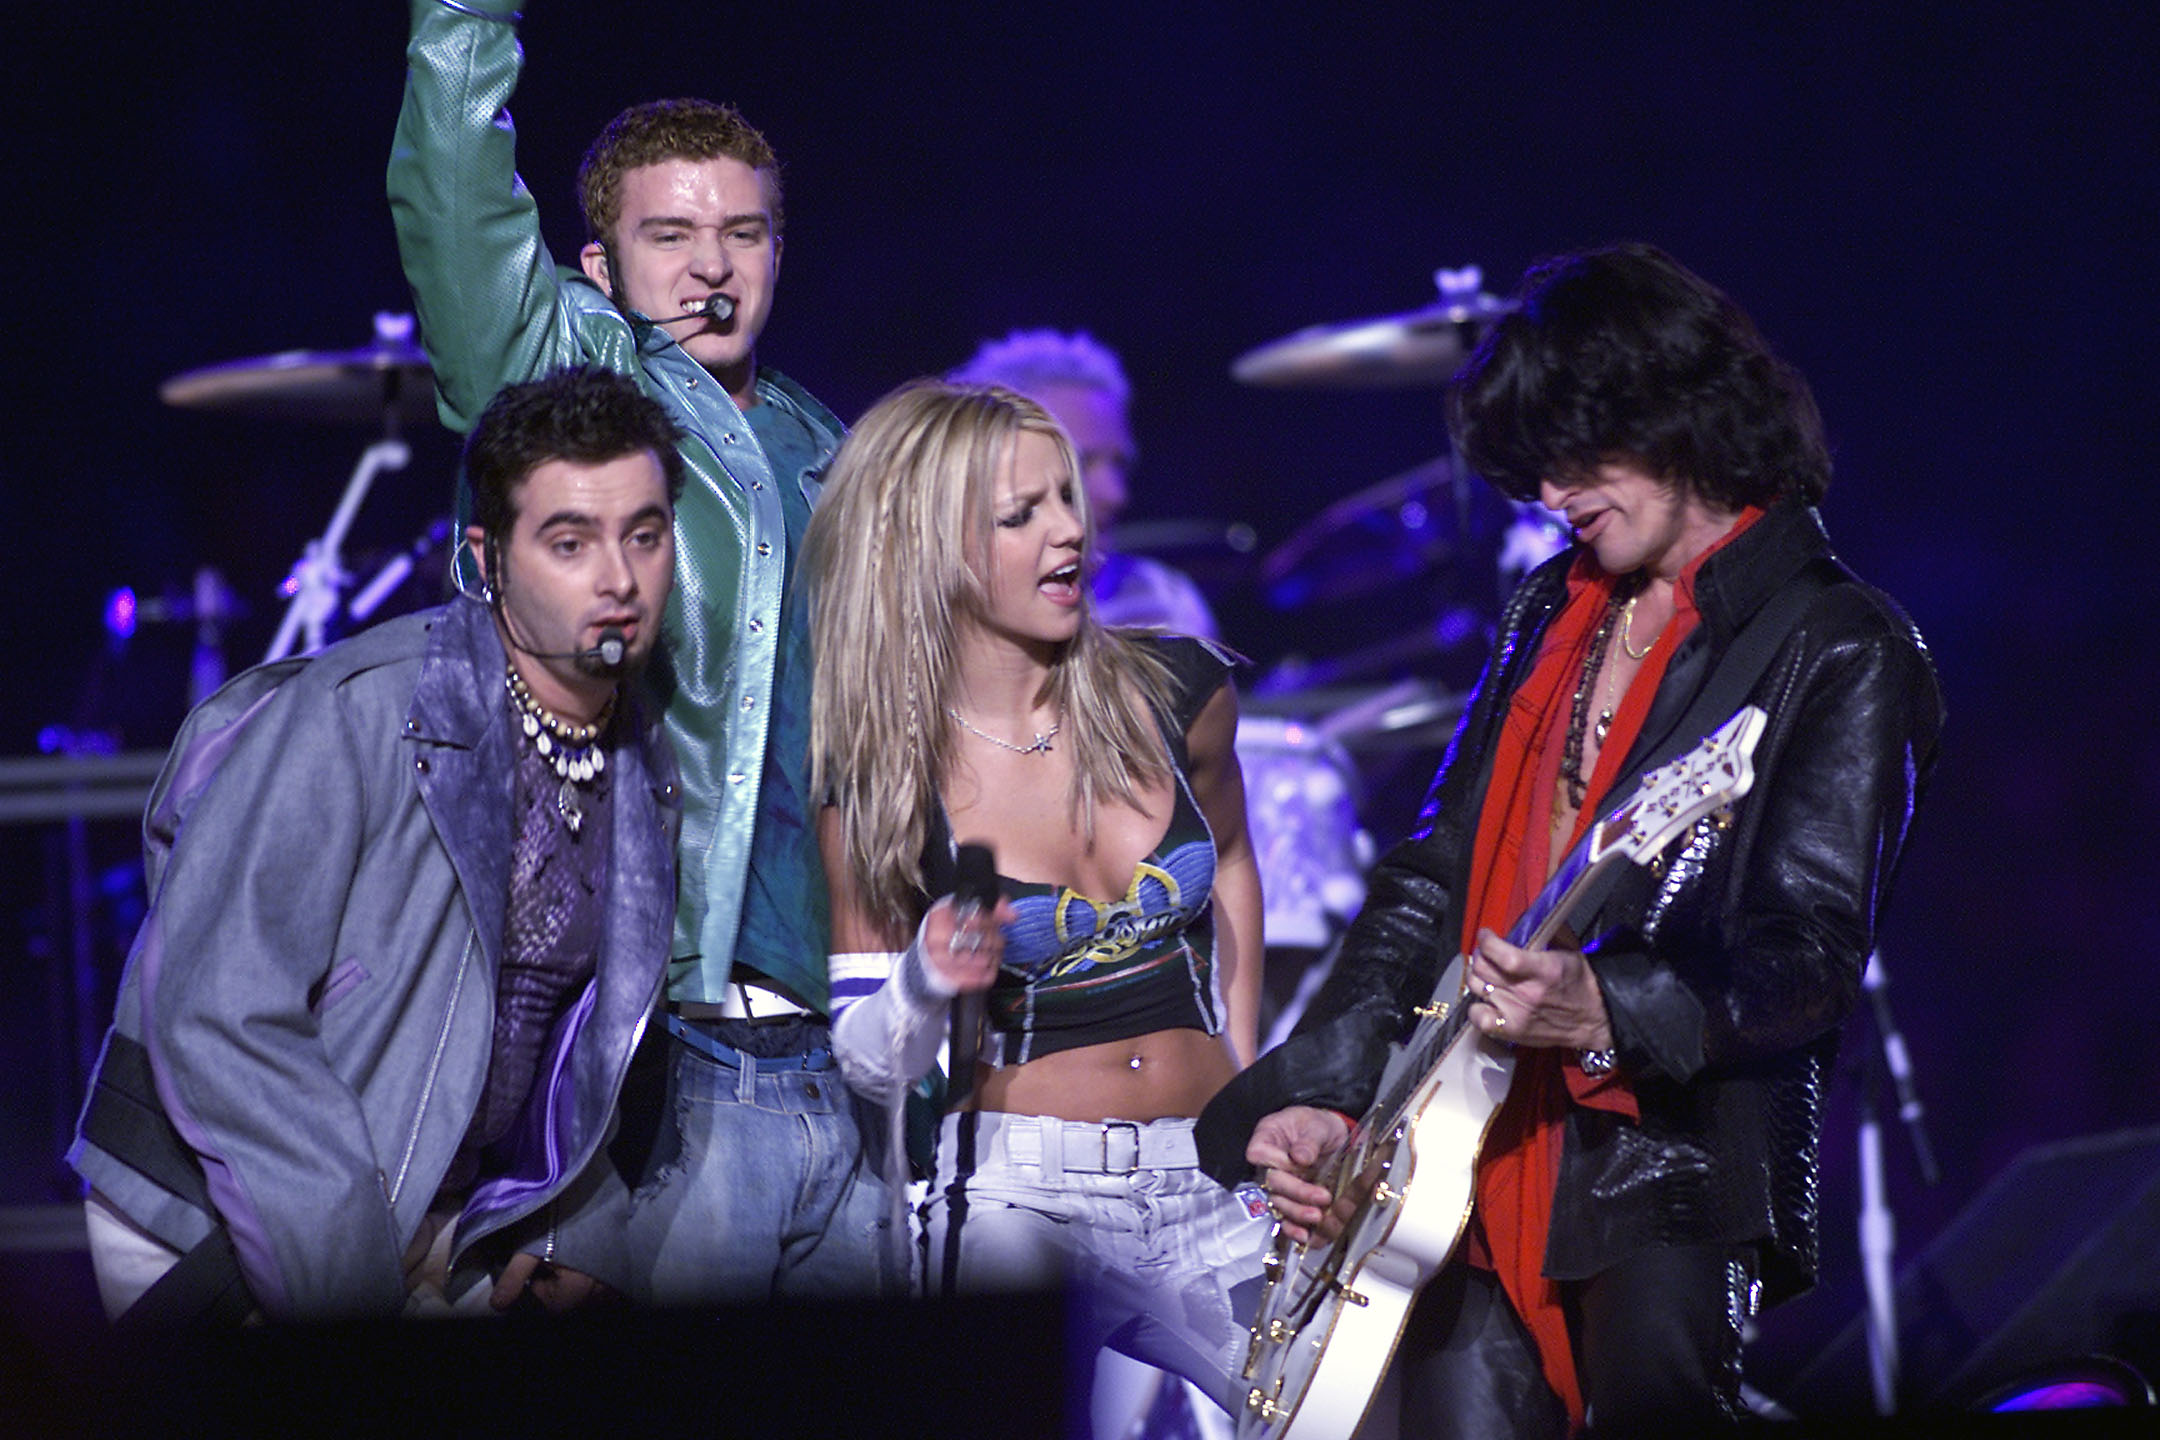 Oh, baby, baby: Rumors are buzzing about a Britney Spears Super Bowl halftime performance